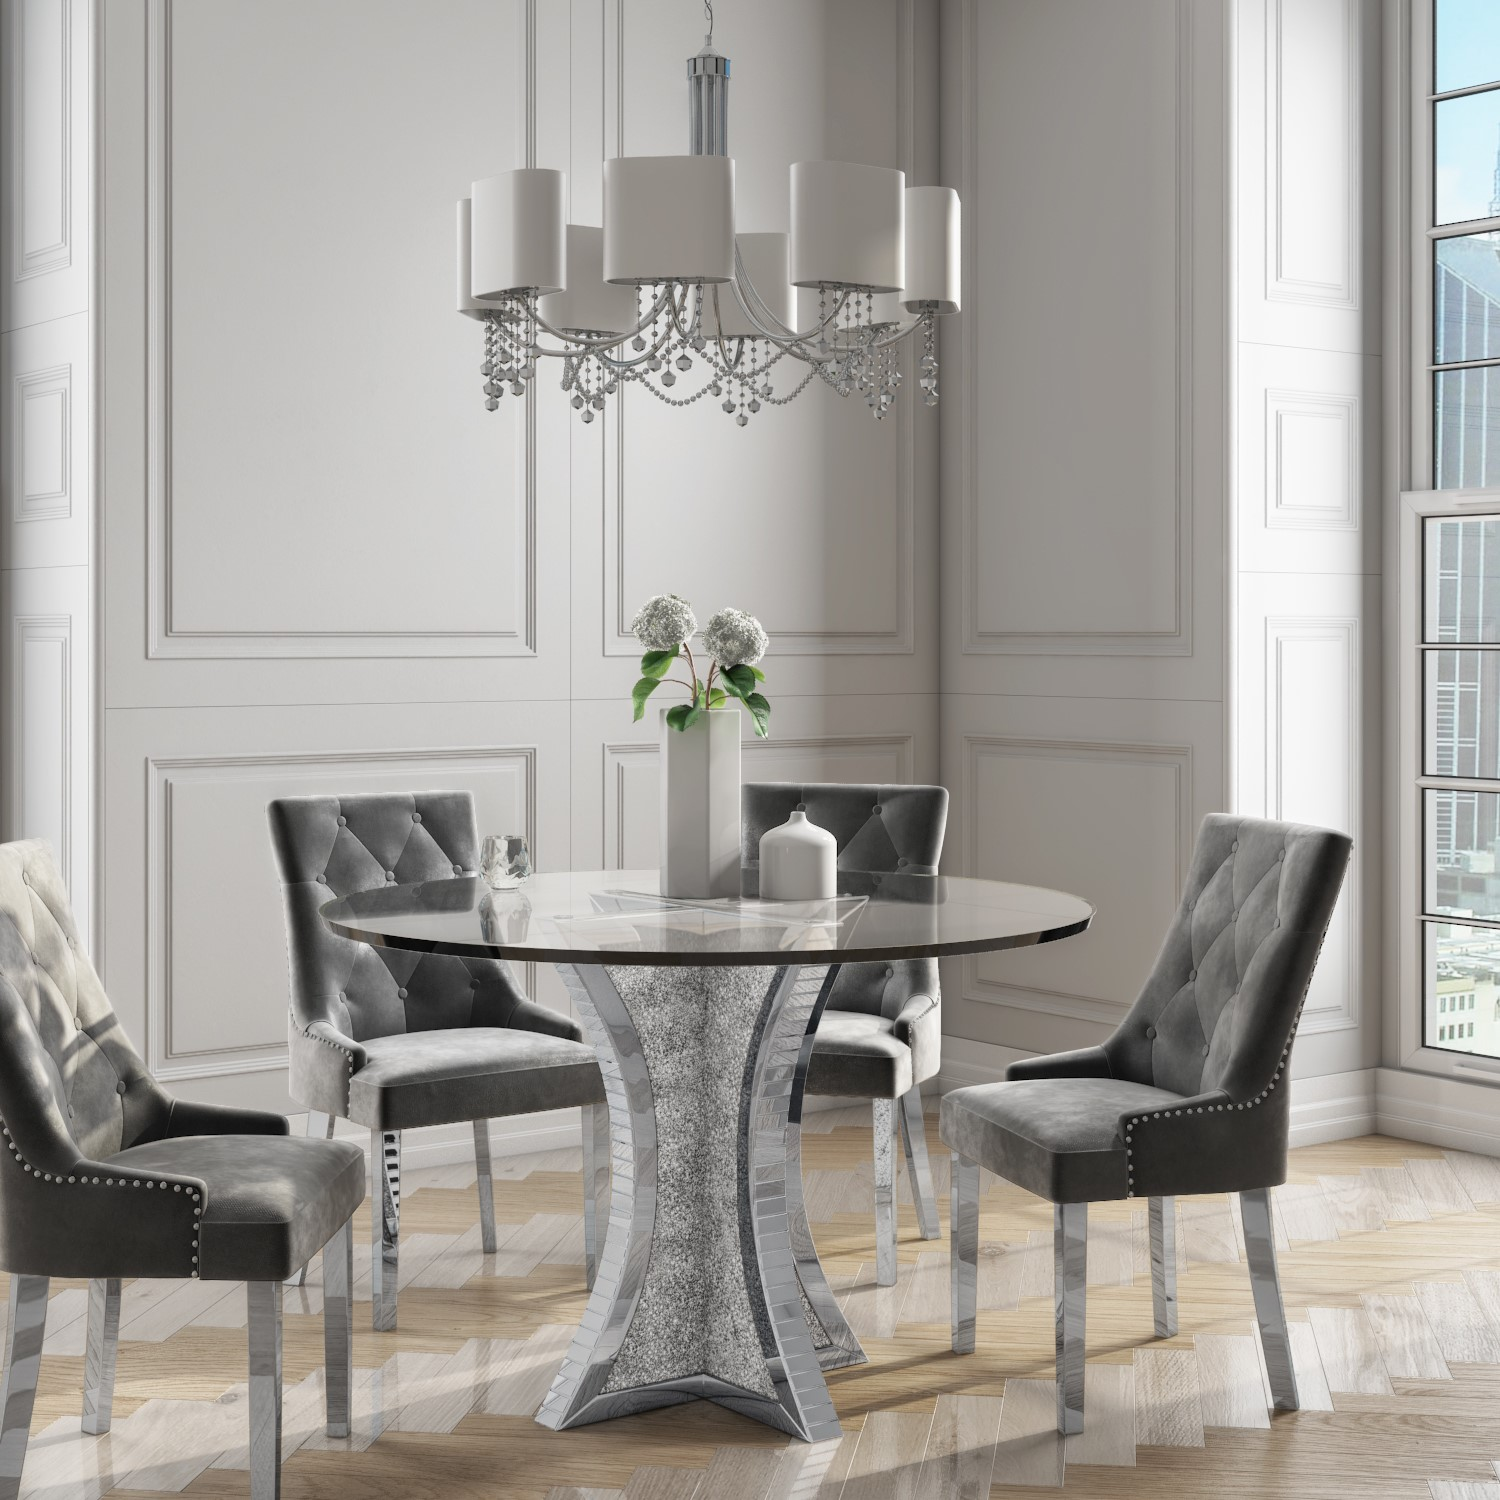 Jade Boutique Round Mirrored Dining Table with 9 Chairs in Grey Velvet